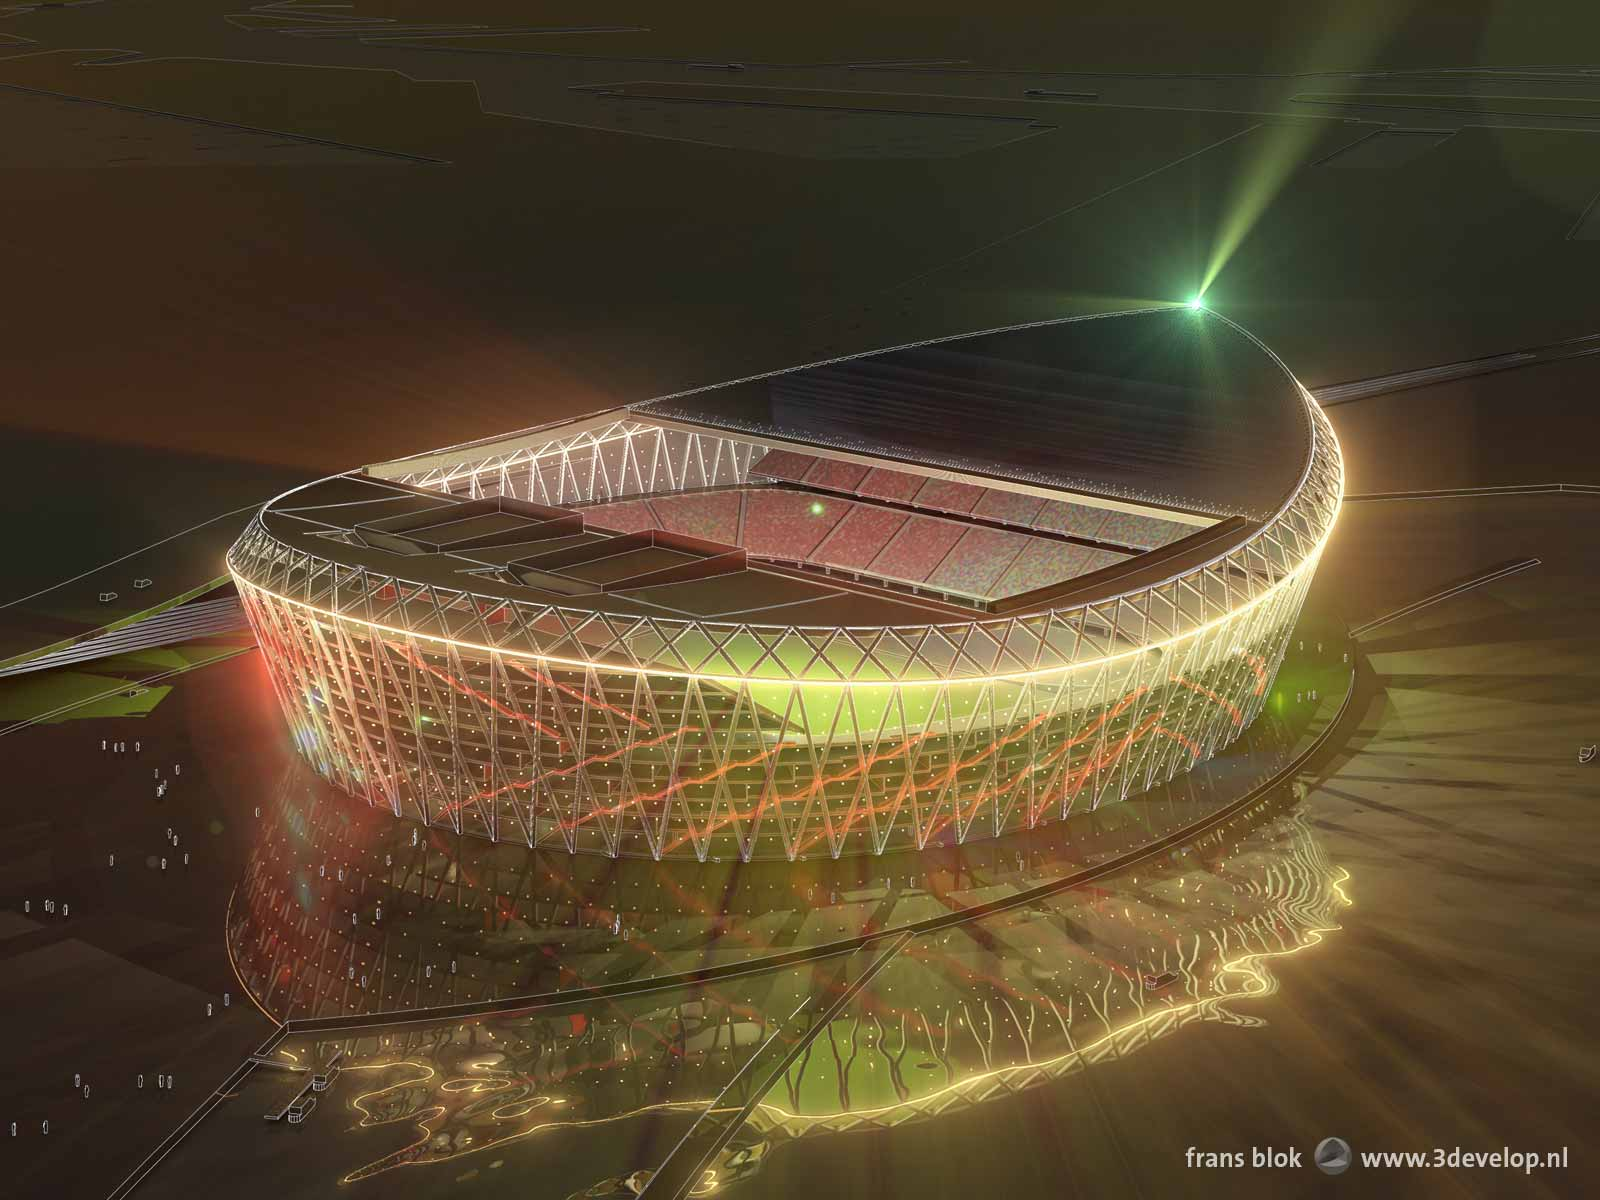 The Barge at Night, artist impression of the new Feyenoord stadium on the banks of the river Nieuwe Maas in Rotterdam